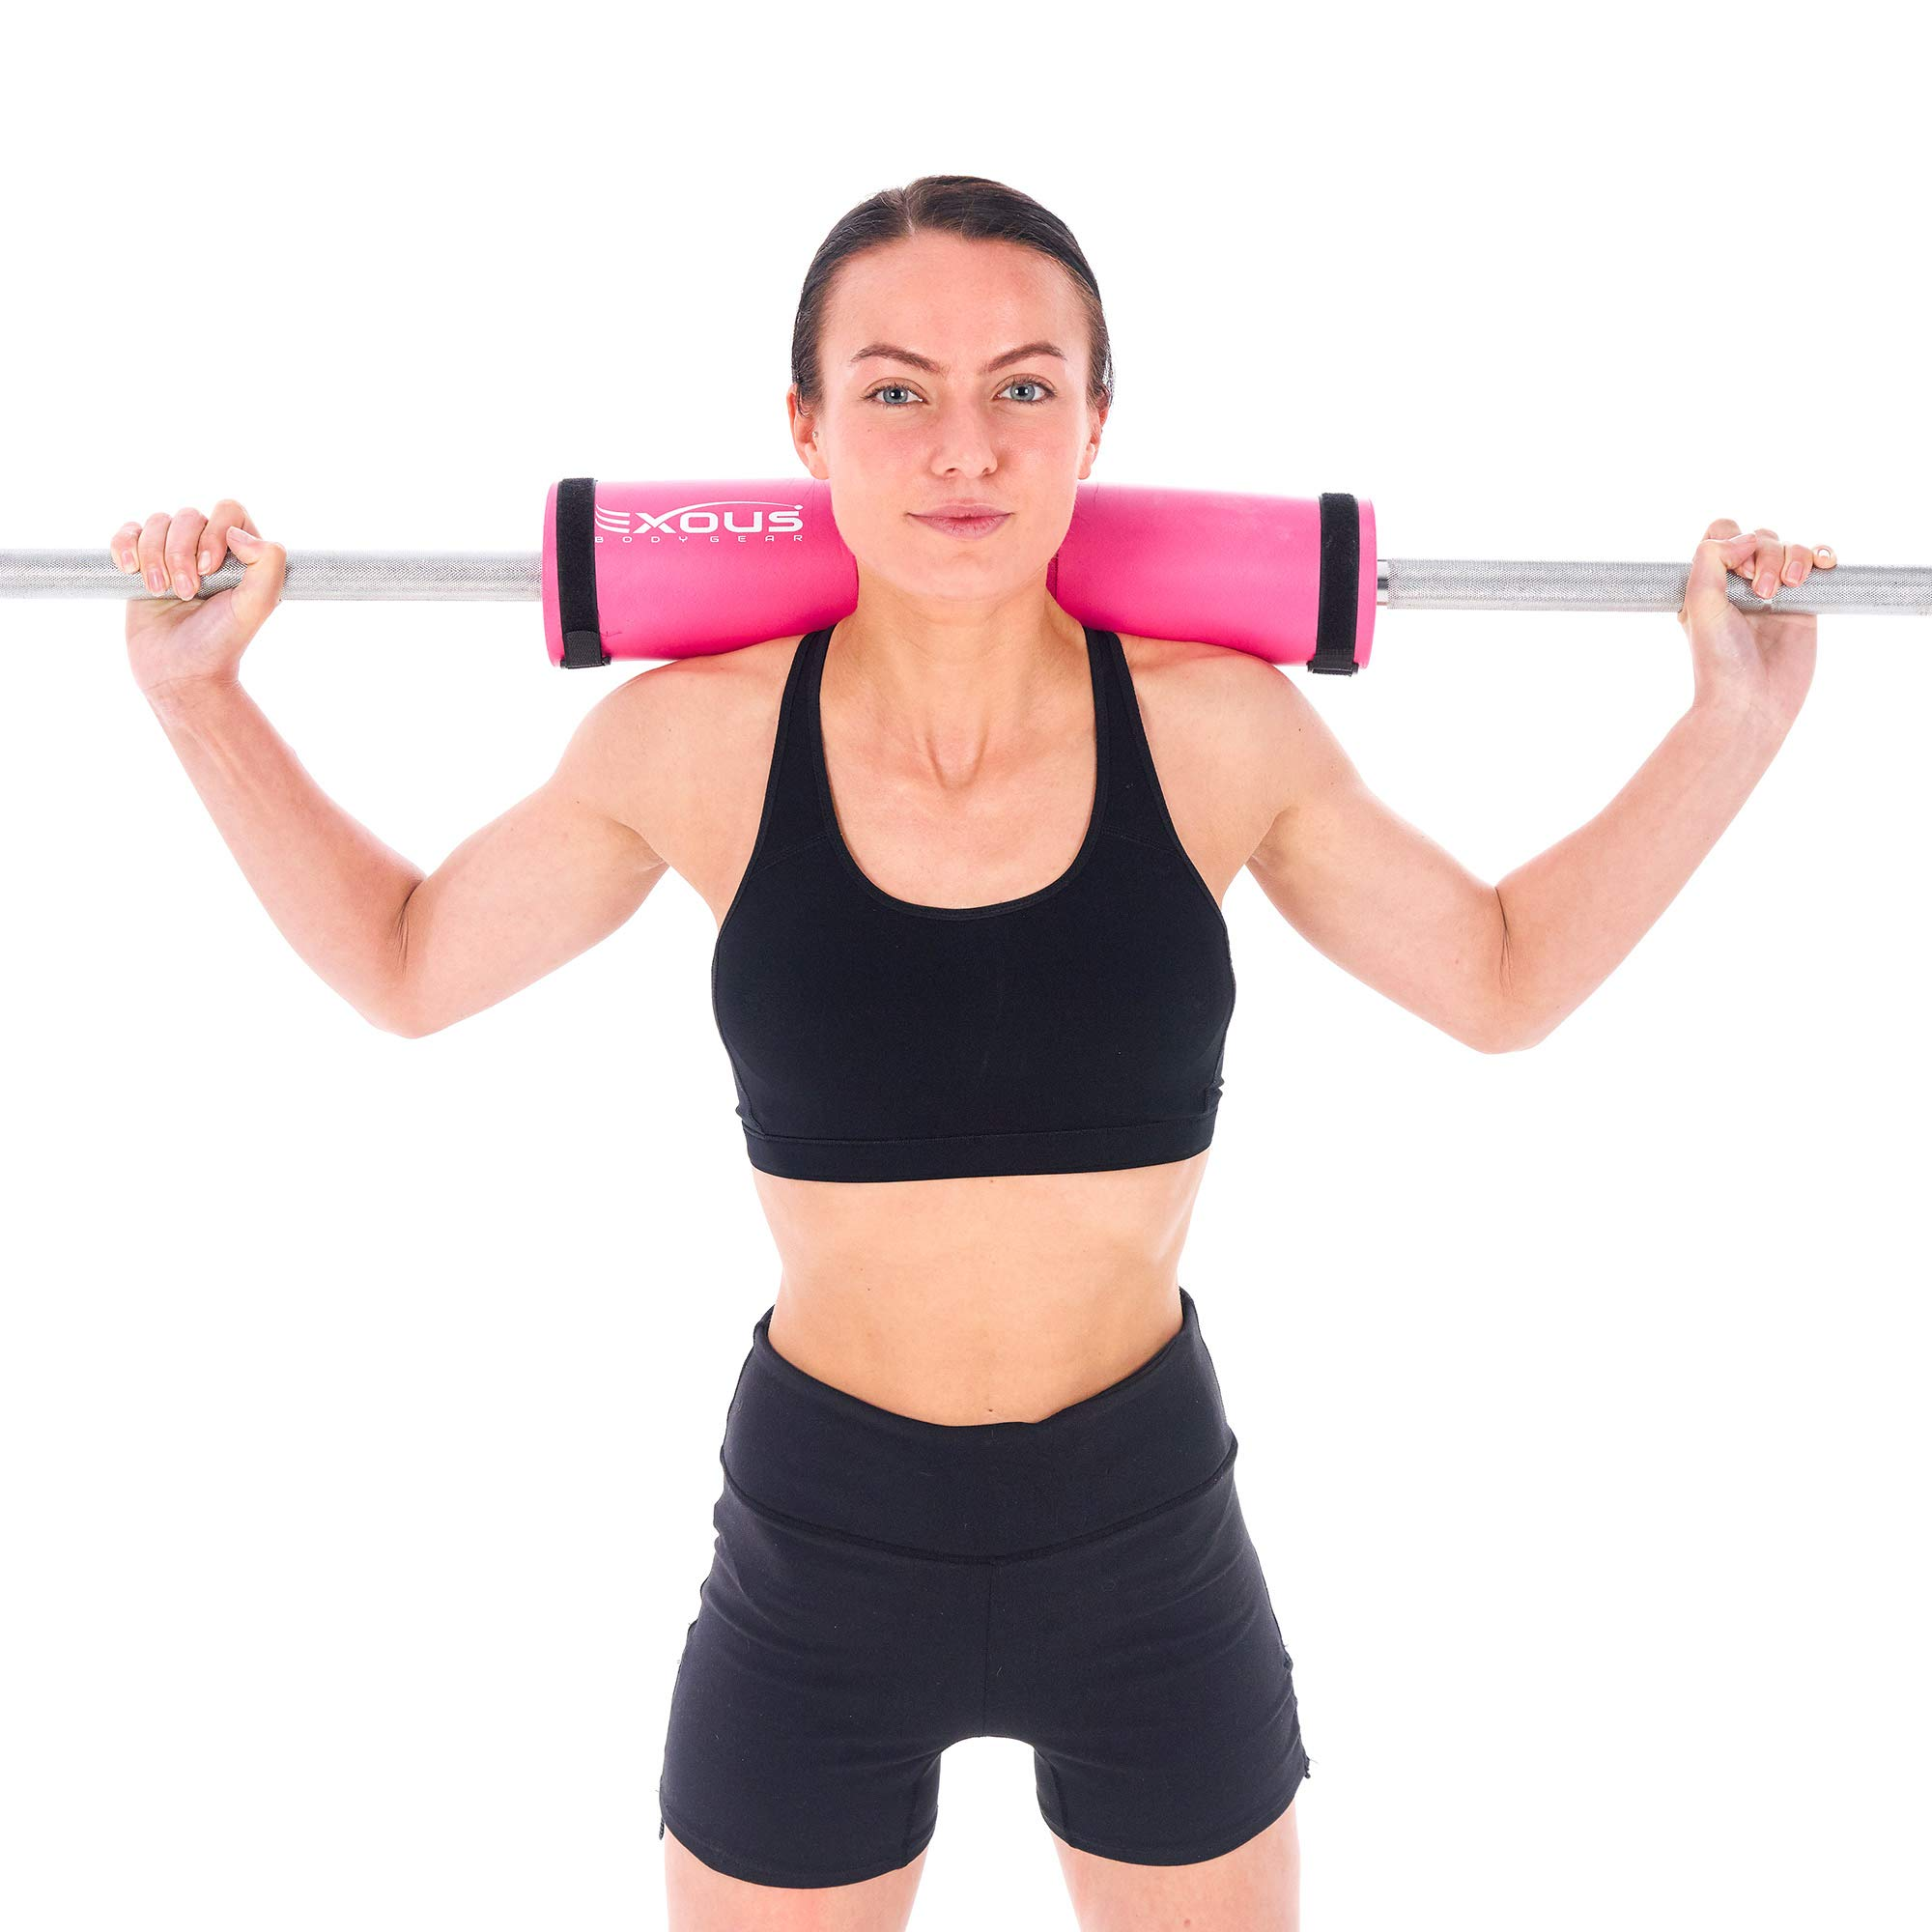 EXOUS Bodygear Barbell Pad Squat Bar Thick Foam Cushion - Protector for Neck & Shoulders - Fits Olympic Weight Lifting Bar - Velcro Straps for Non Slip Fit (Pink)